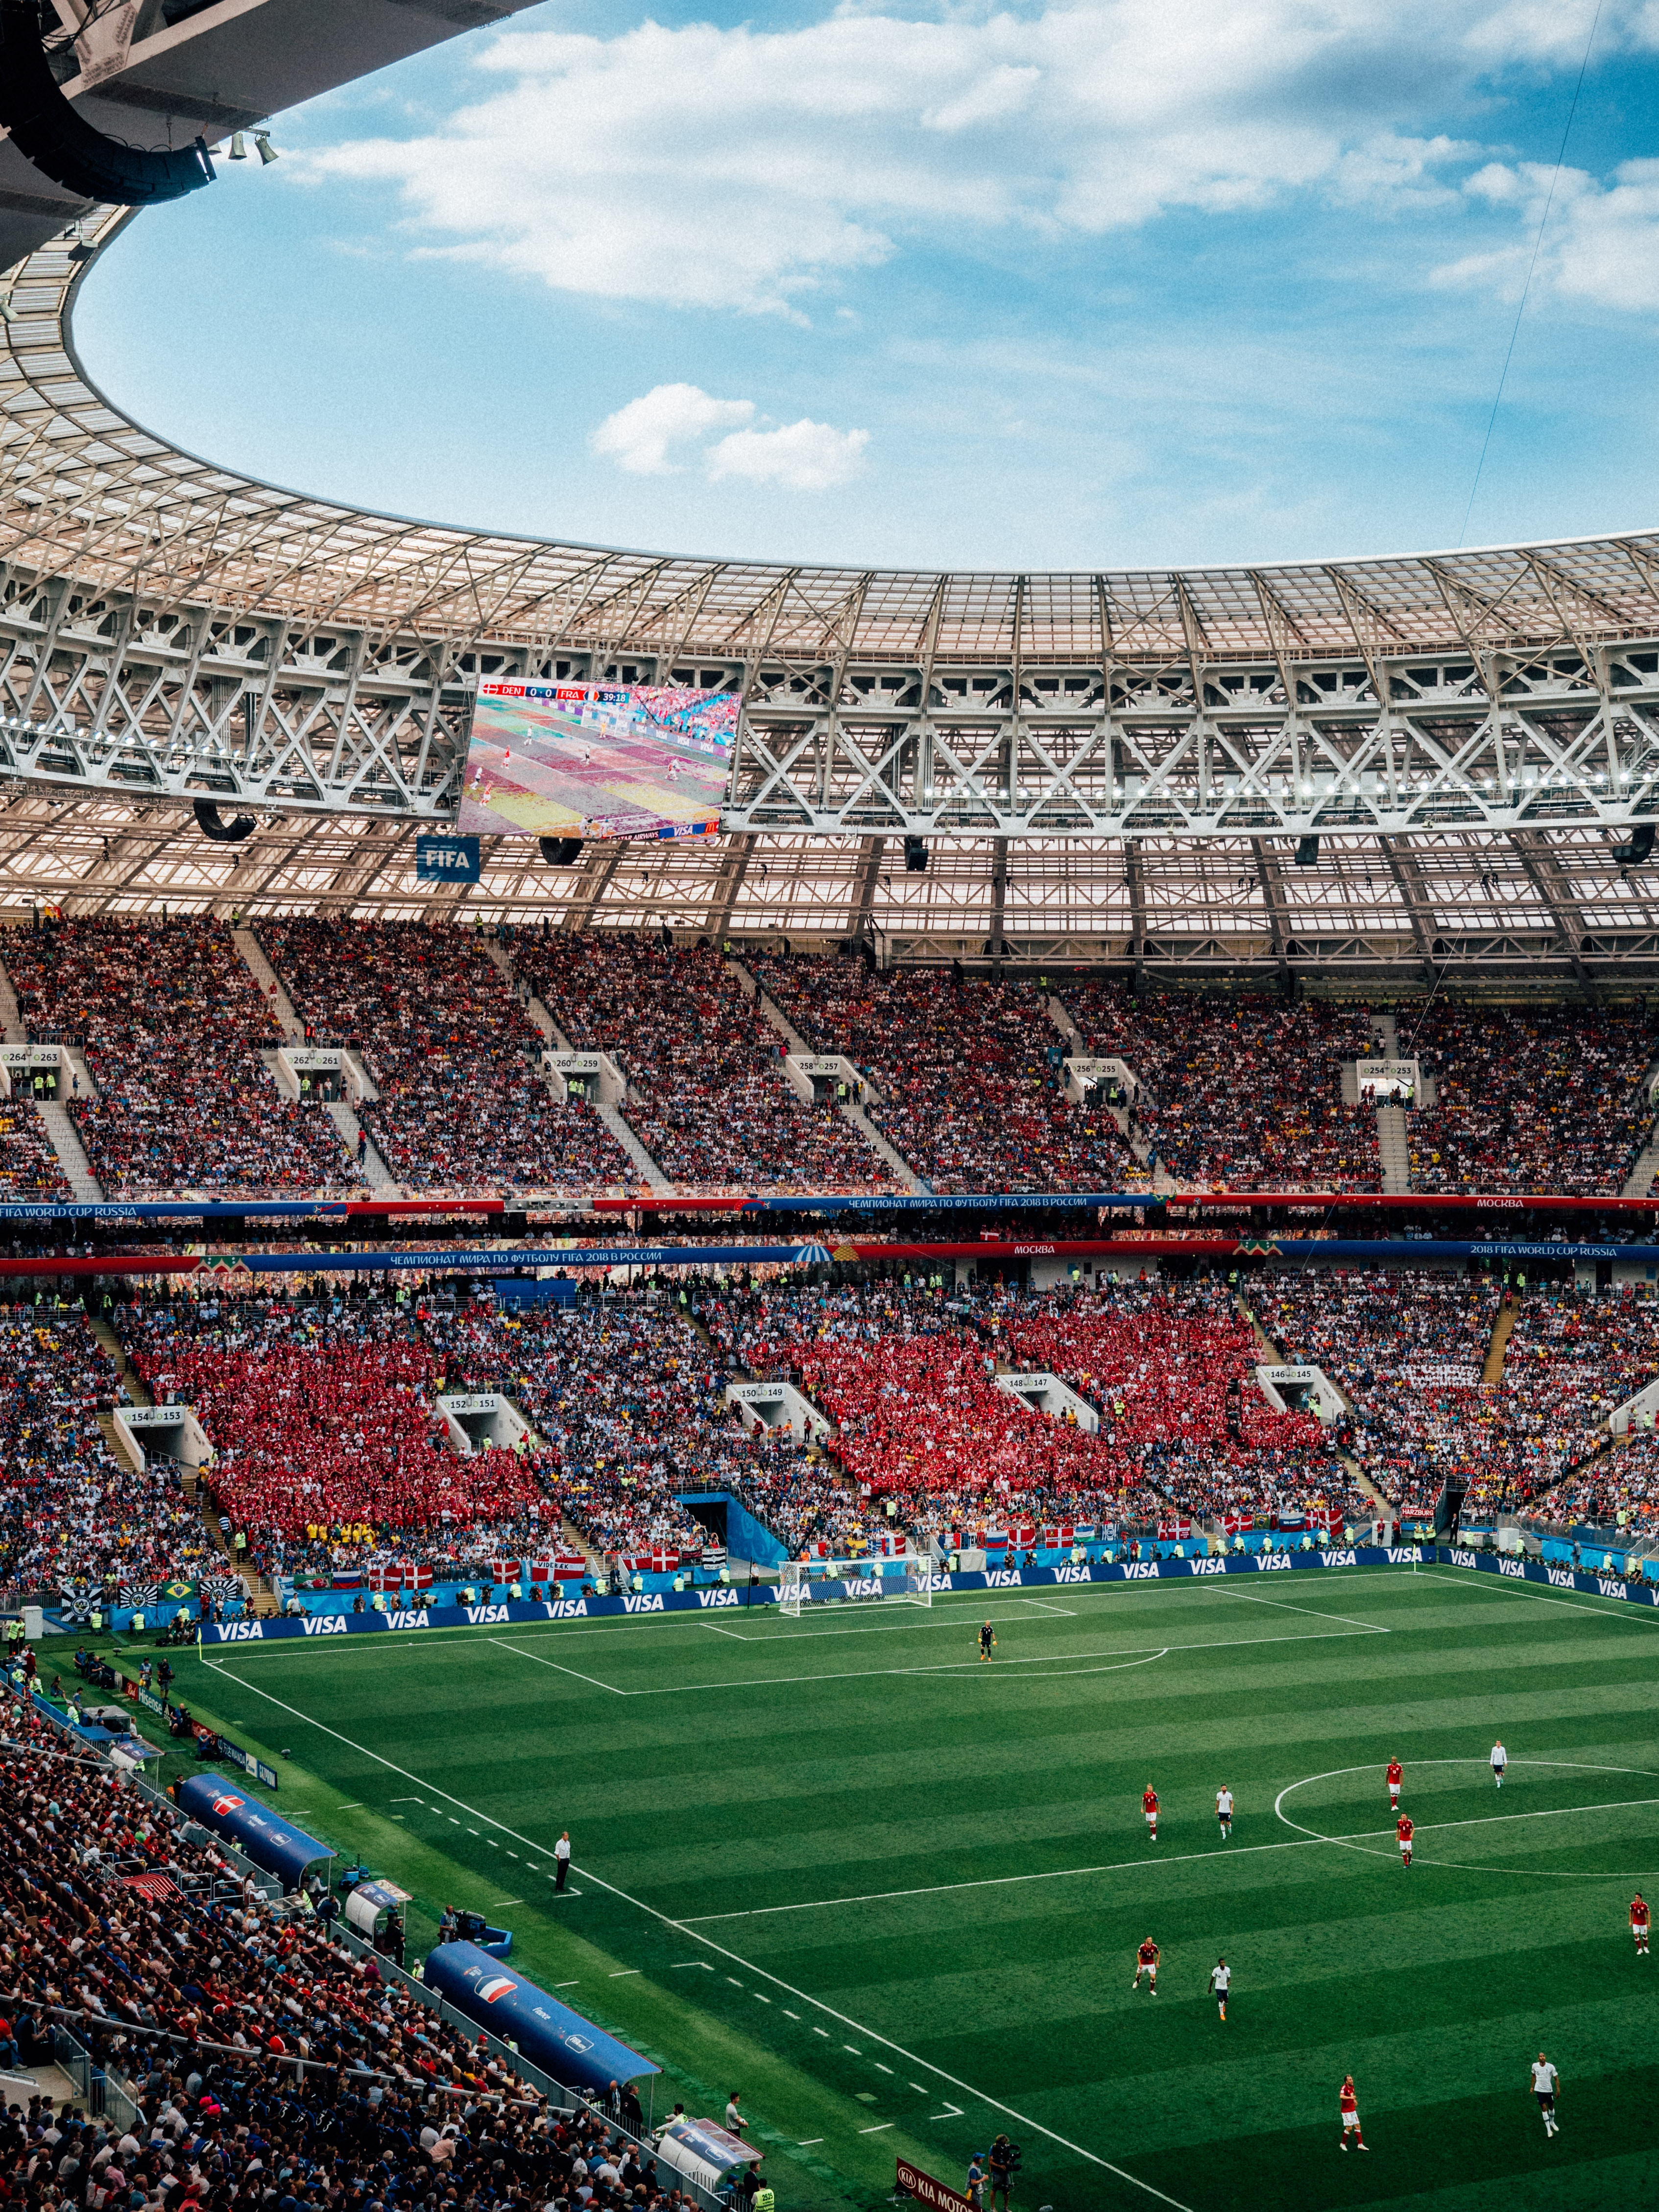 A view of the Moscow World Cup stadium full of fans--MediaFusion Live Streaming